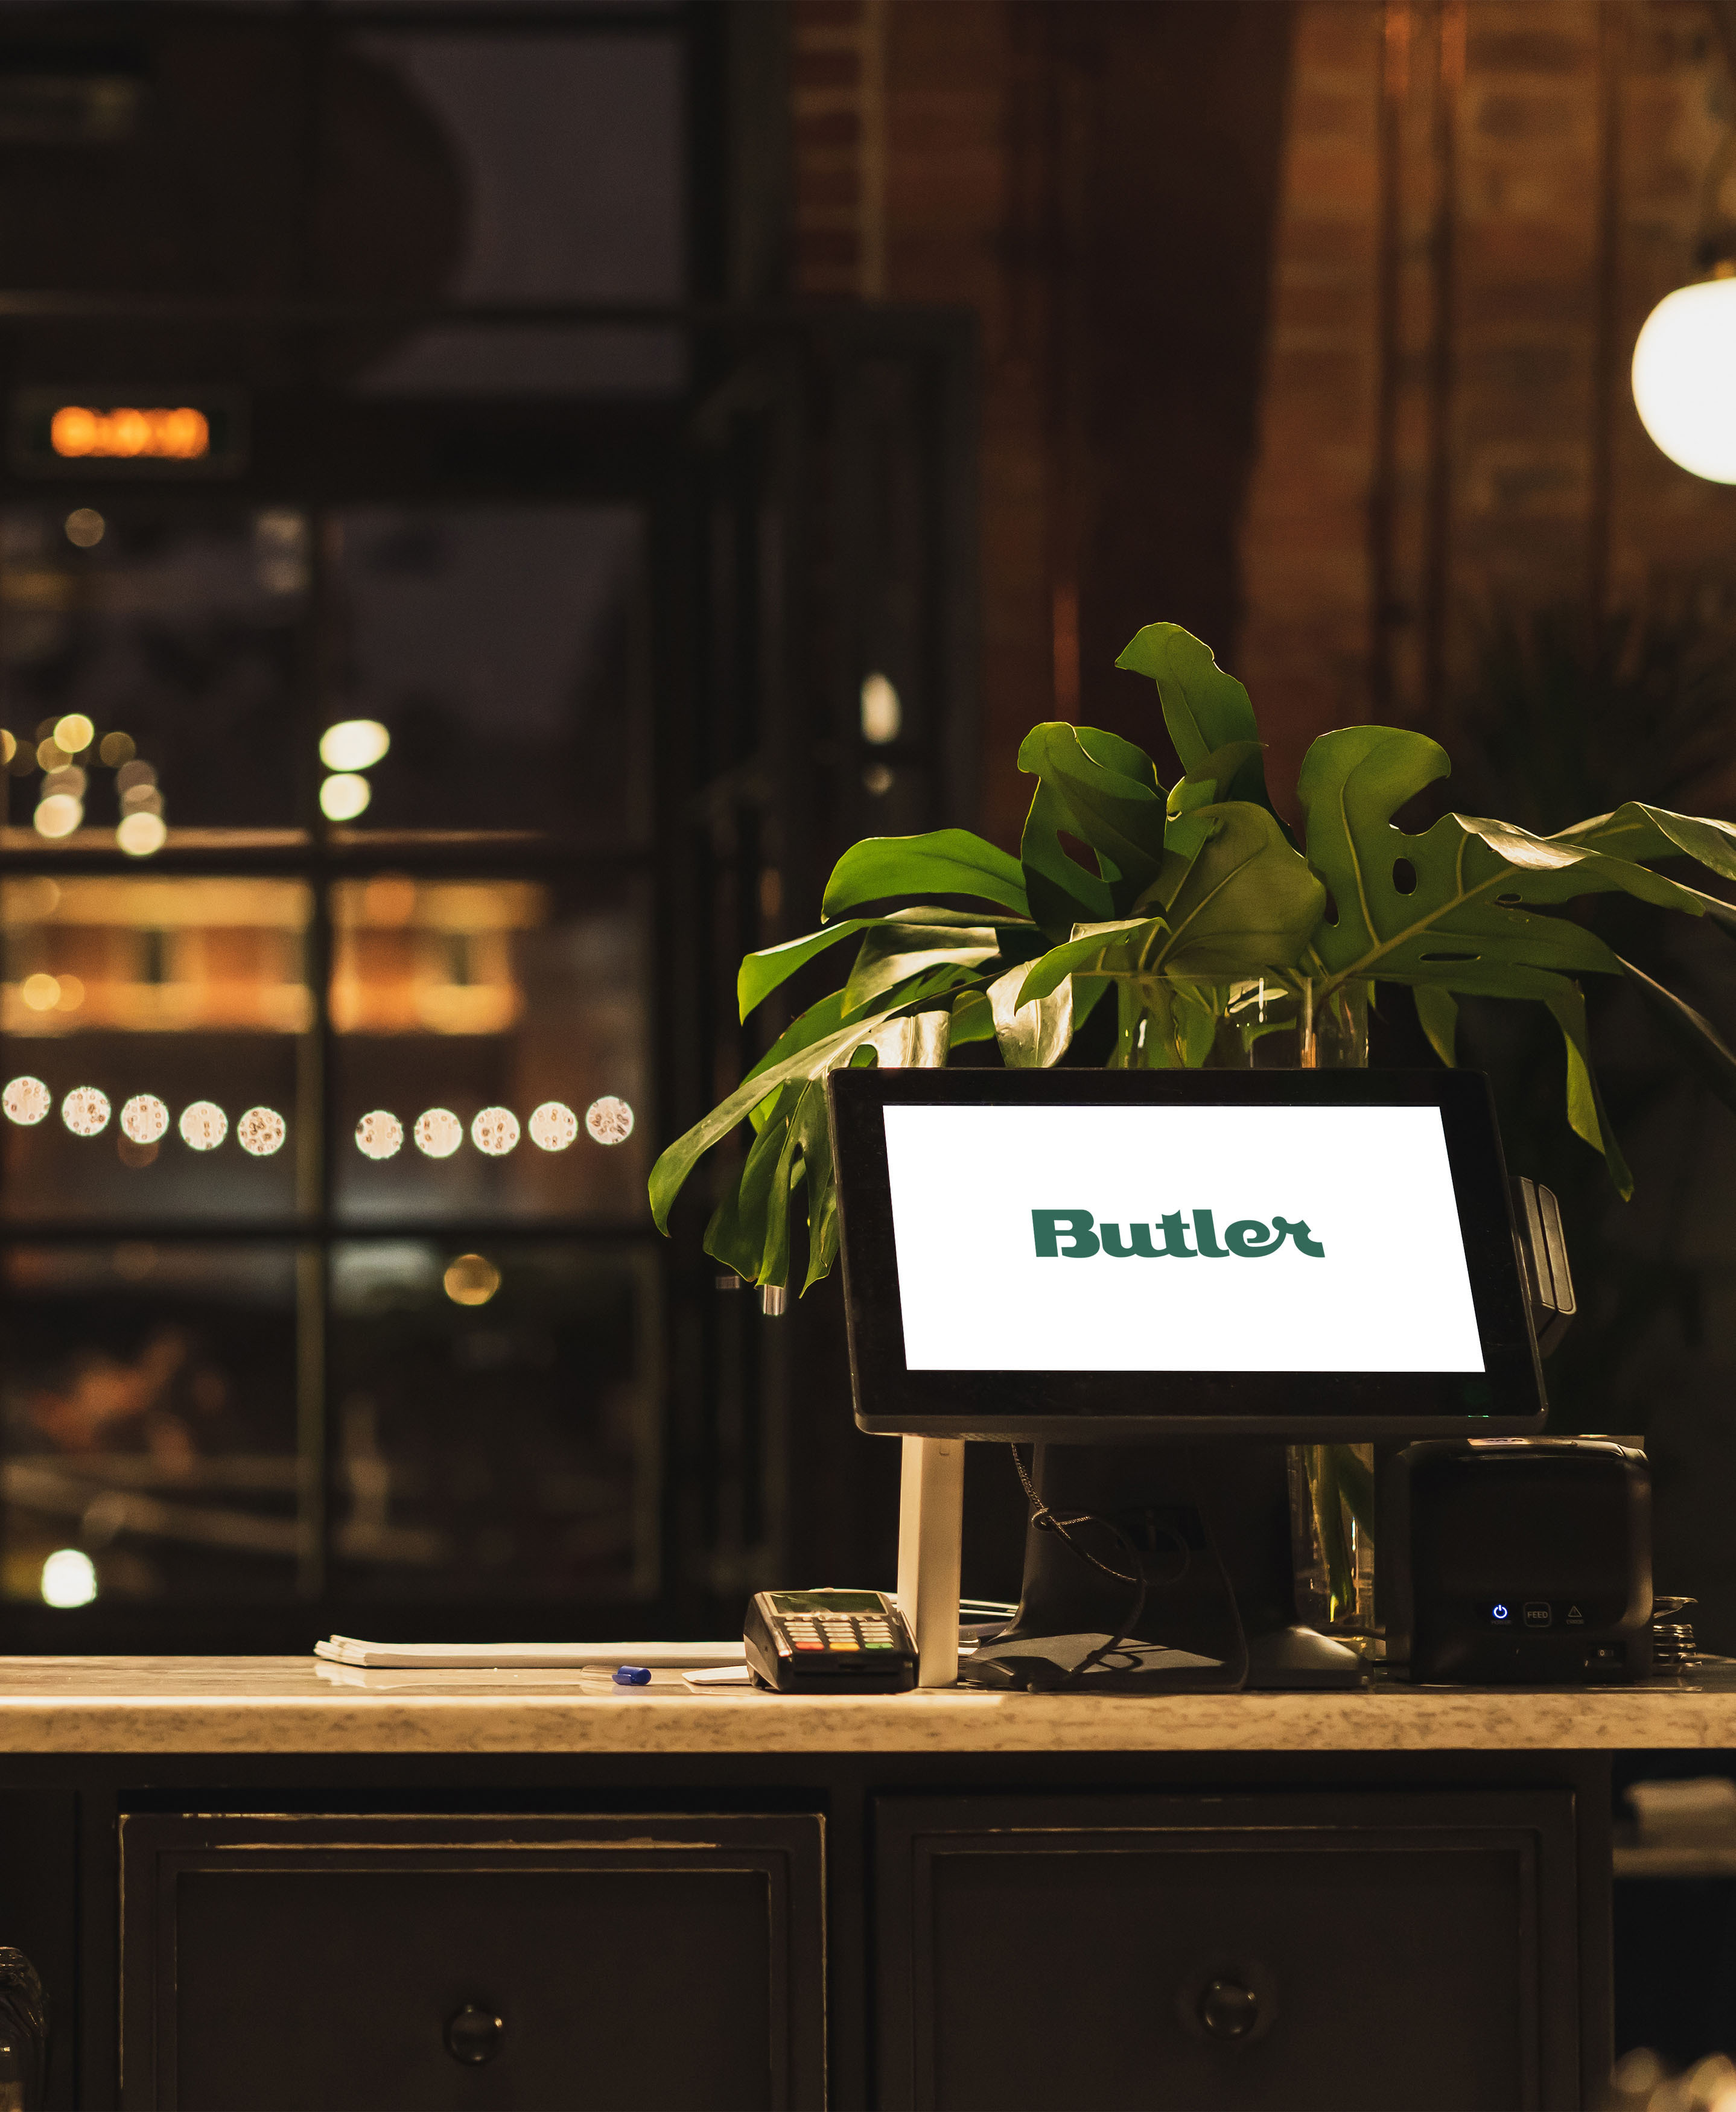 BUTLER LEADS THE DIGITAL TRANSFORMATION OF HOTELS second